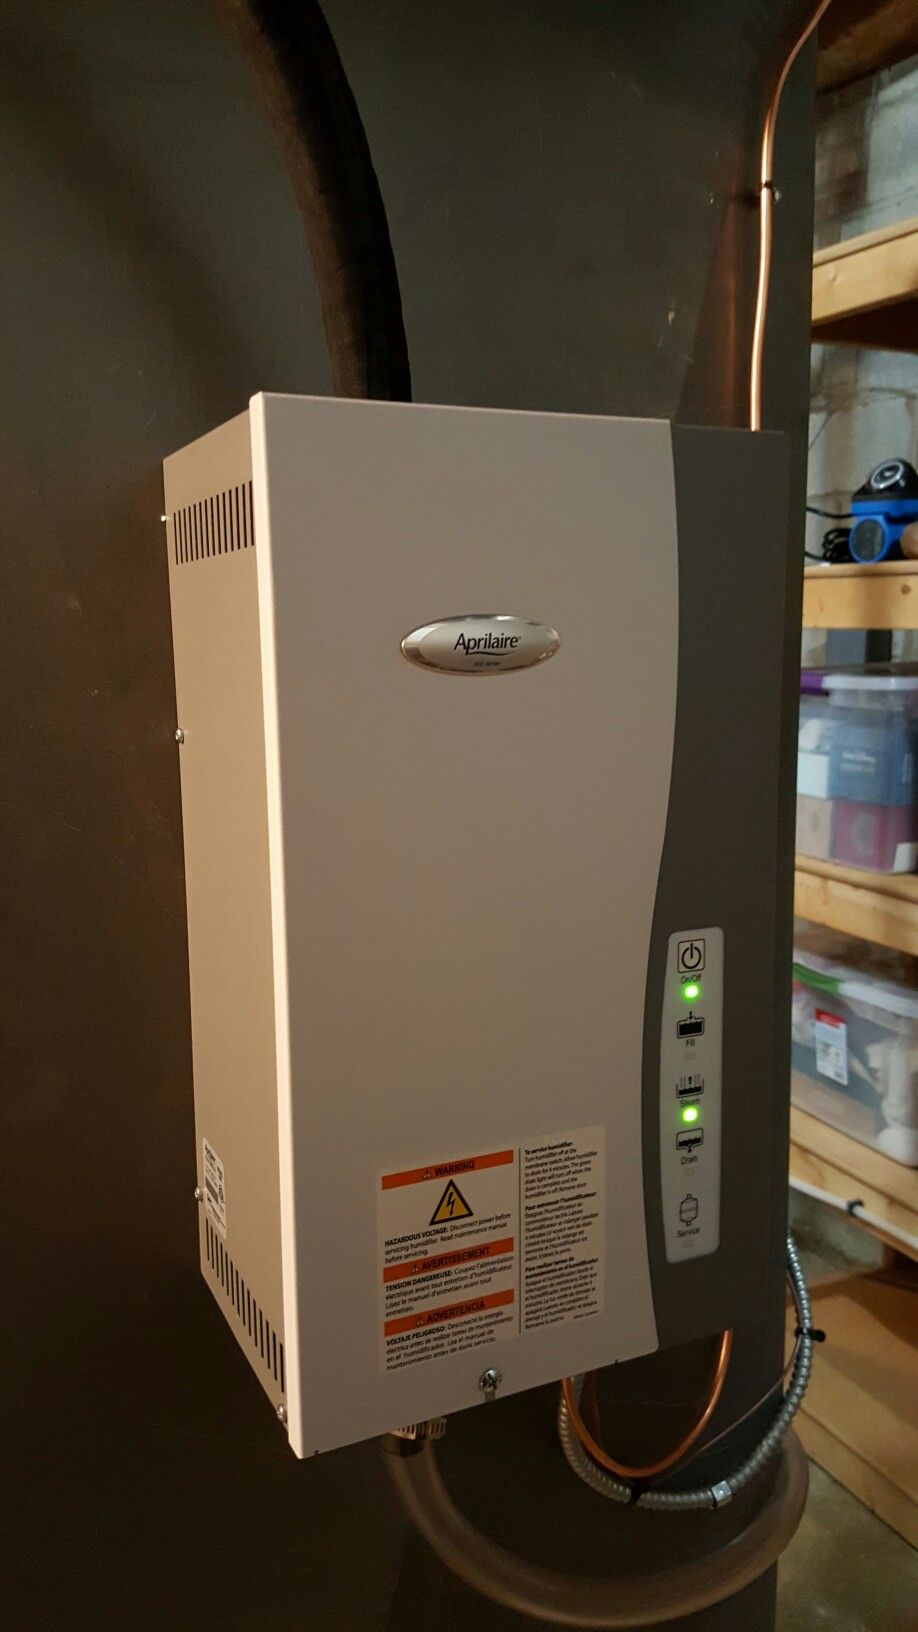 Aprilaire model 800 whole home steam humidifier installed